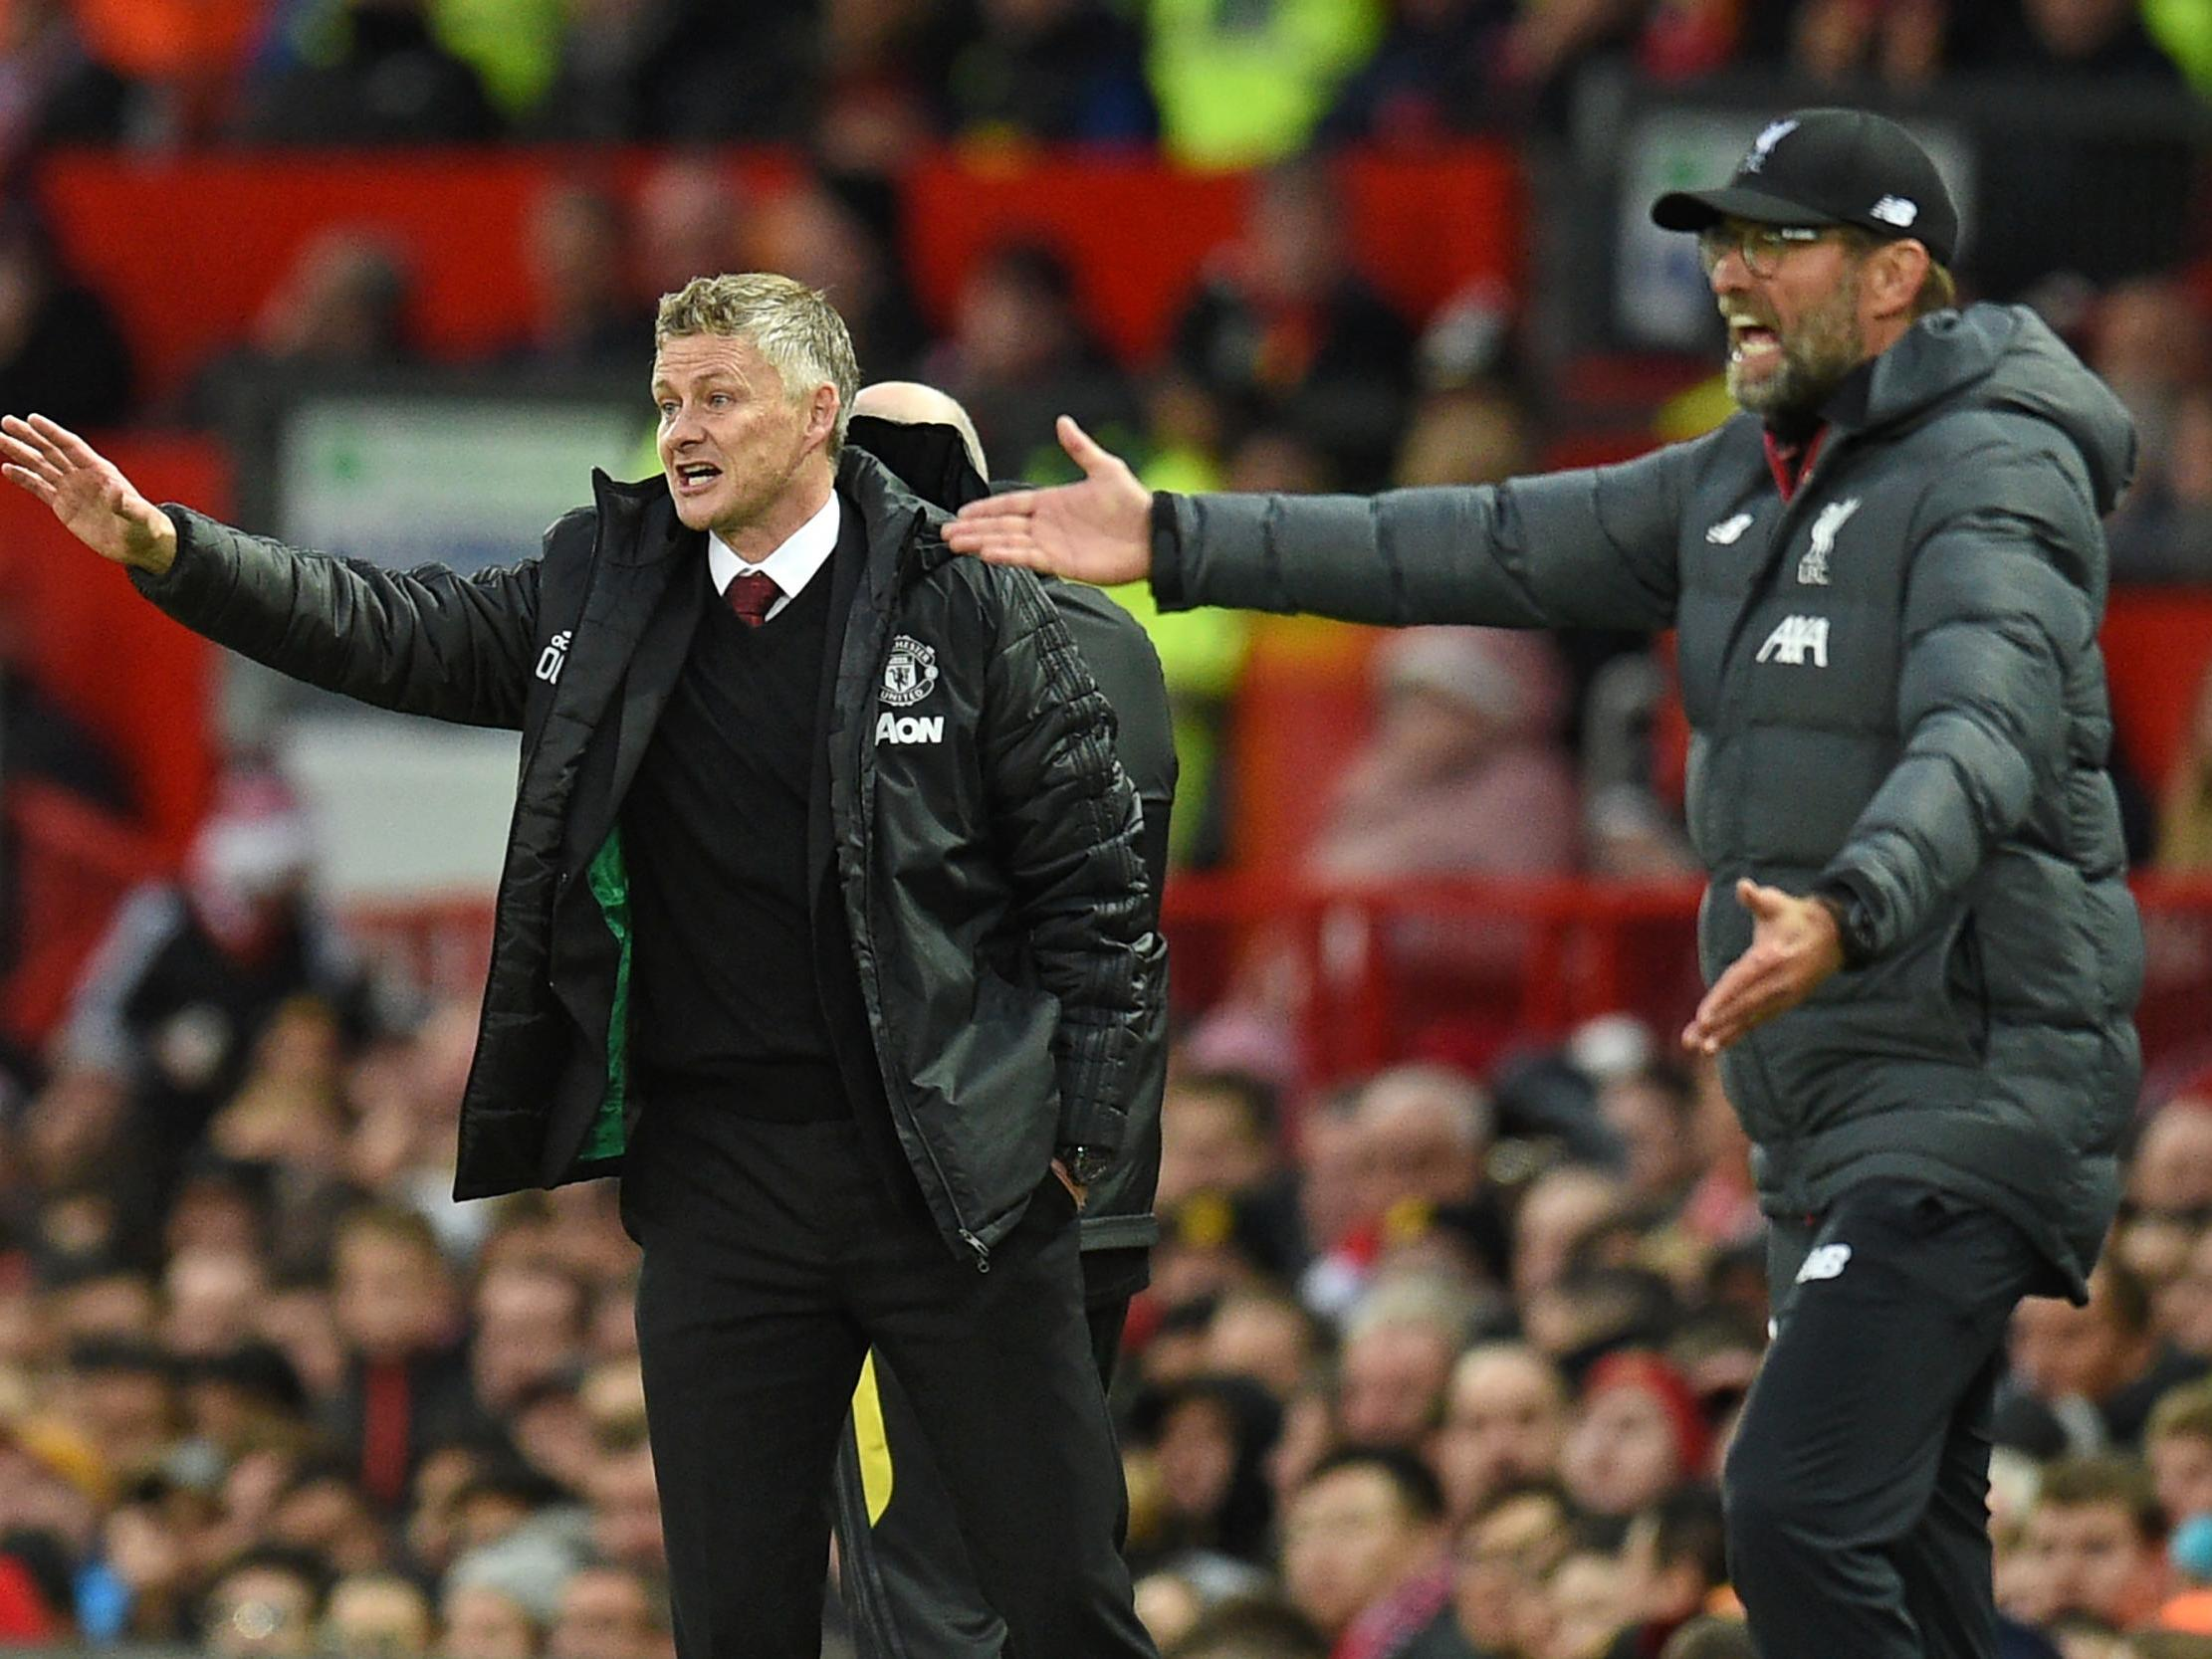 Liverpool vs Manchester United confirmed line-ups: Team news ahead of Premier League fixture today